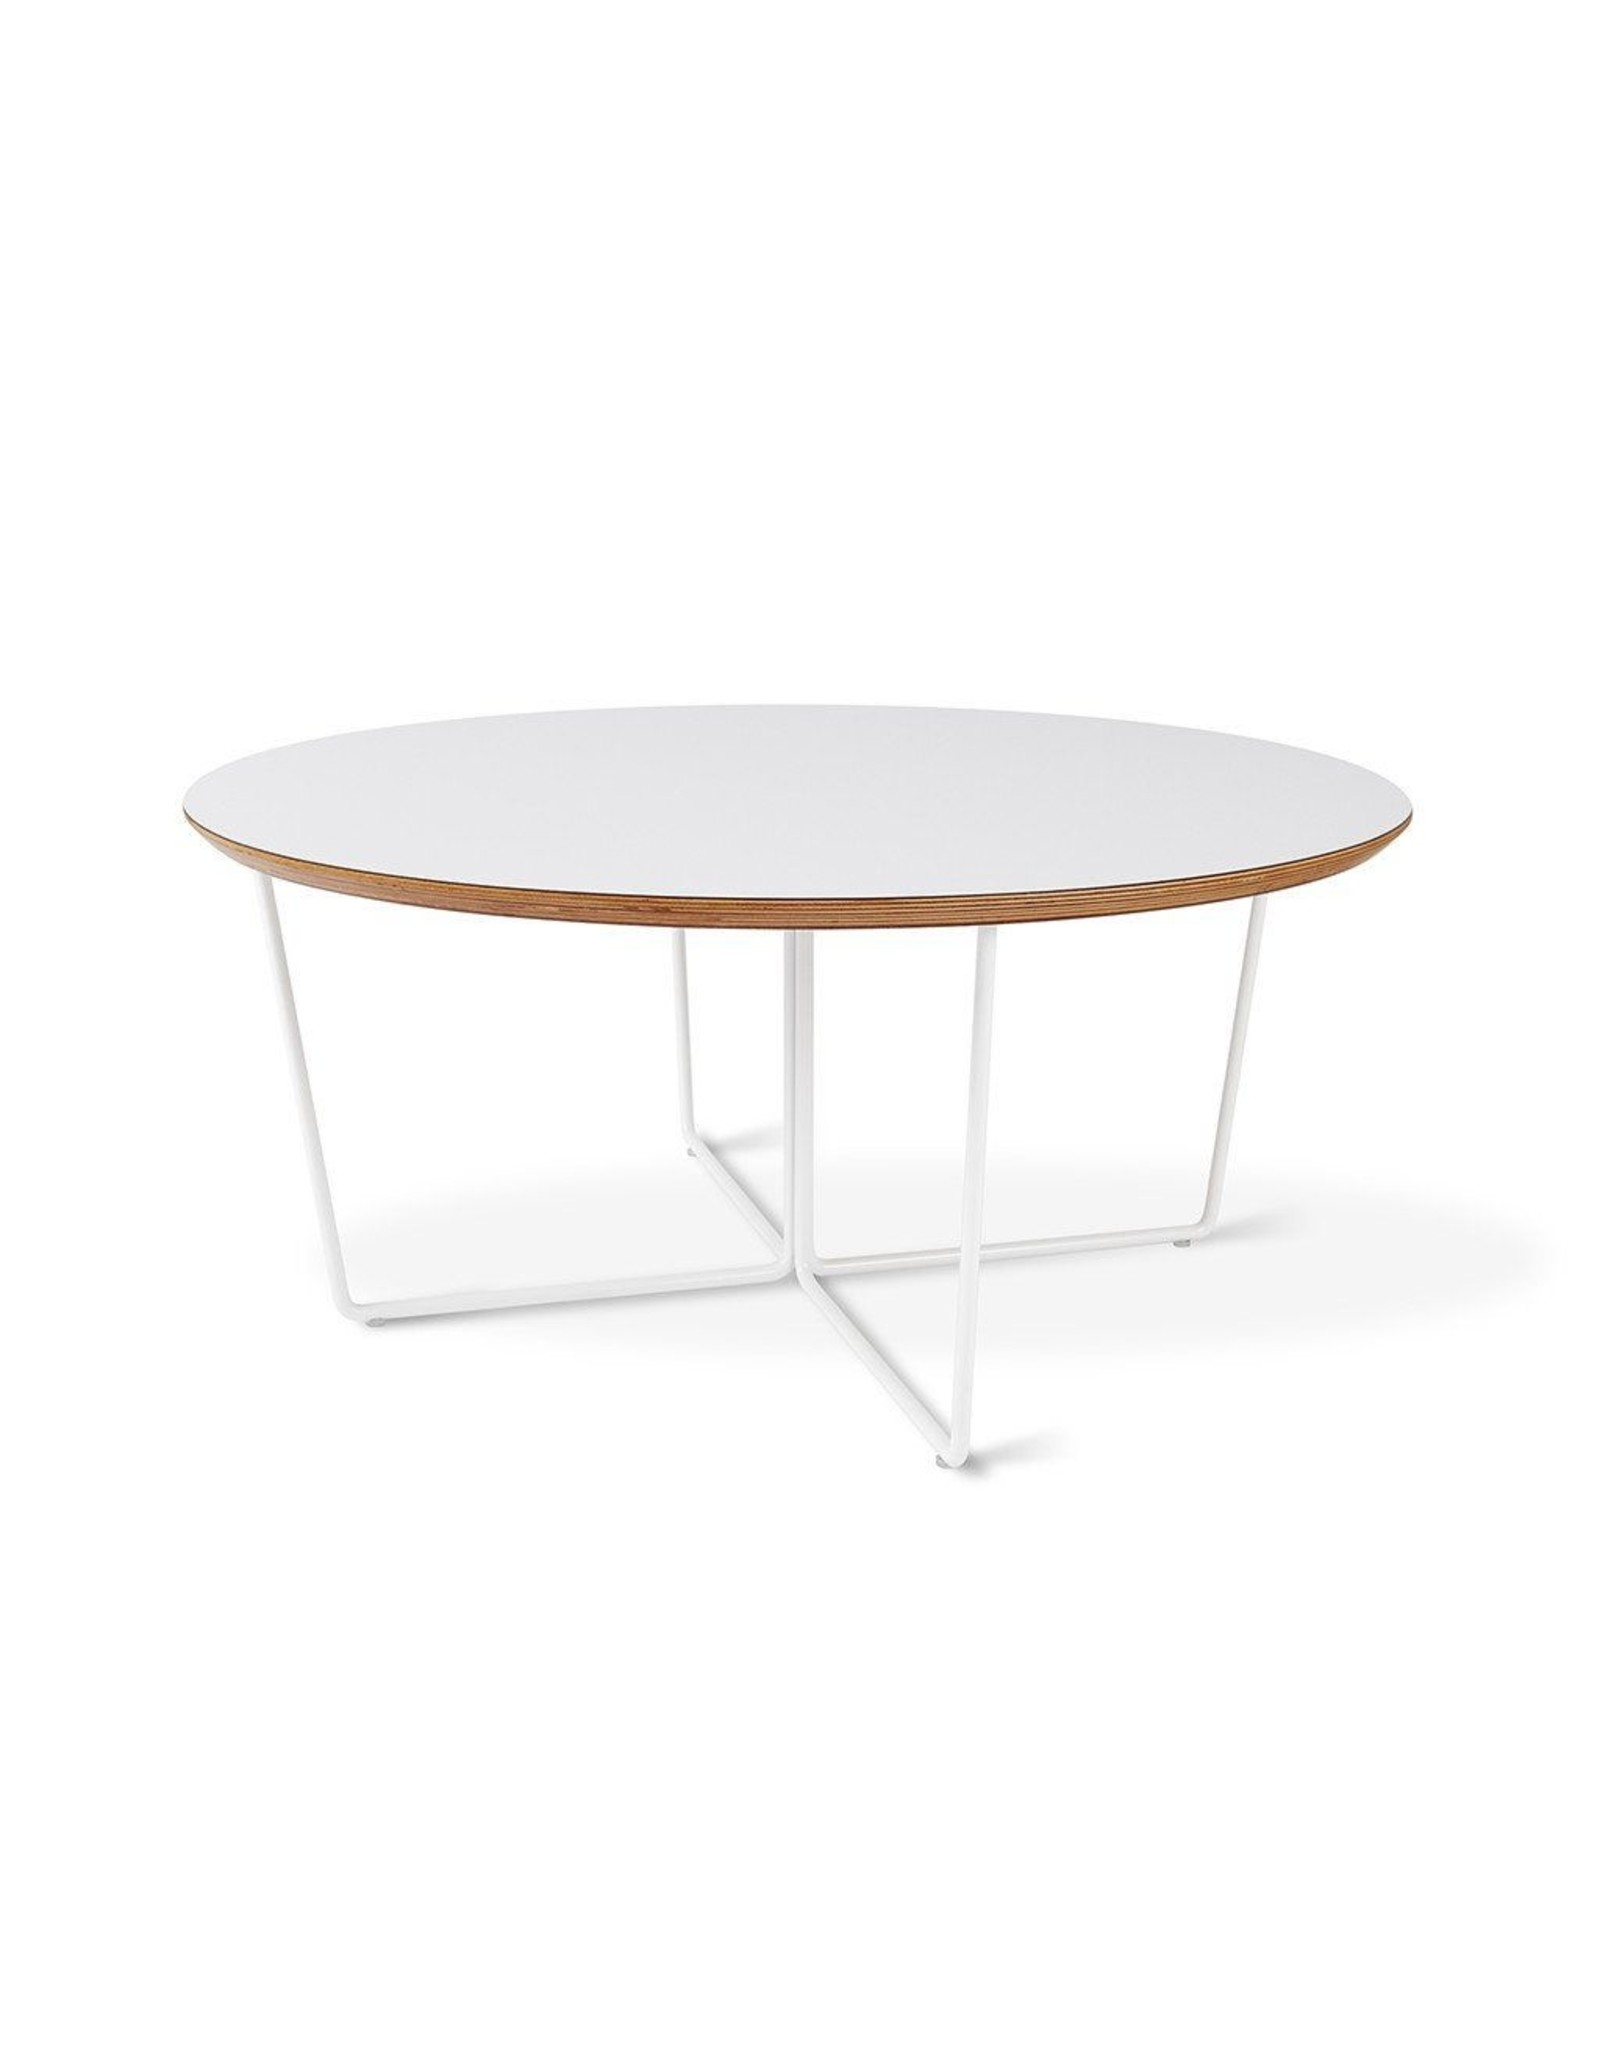 Gus* Modern Array Coffee Table, Round